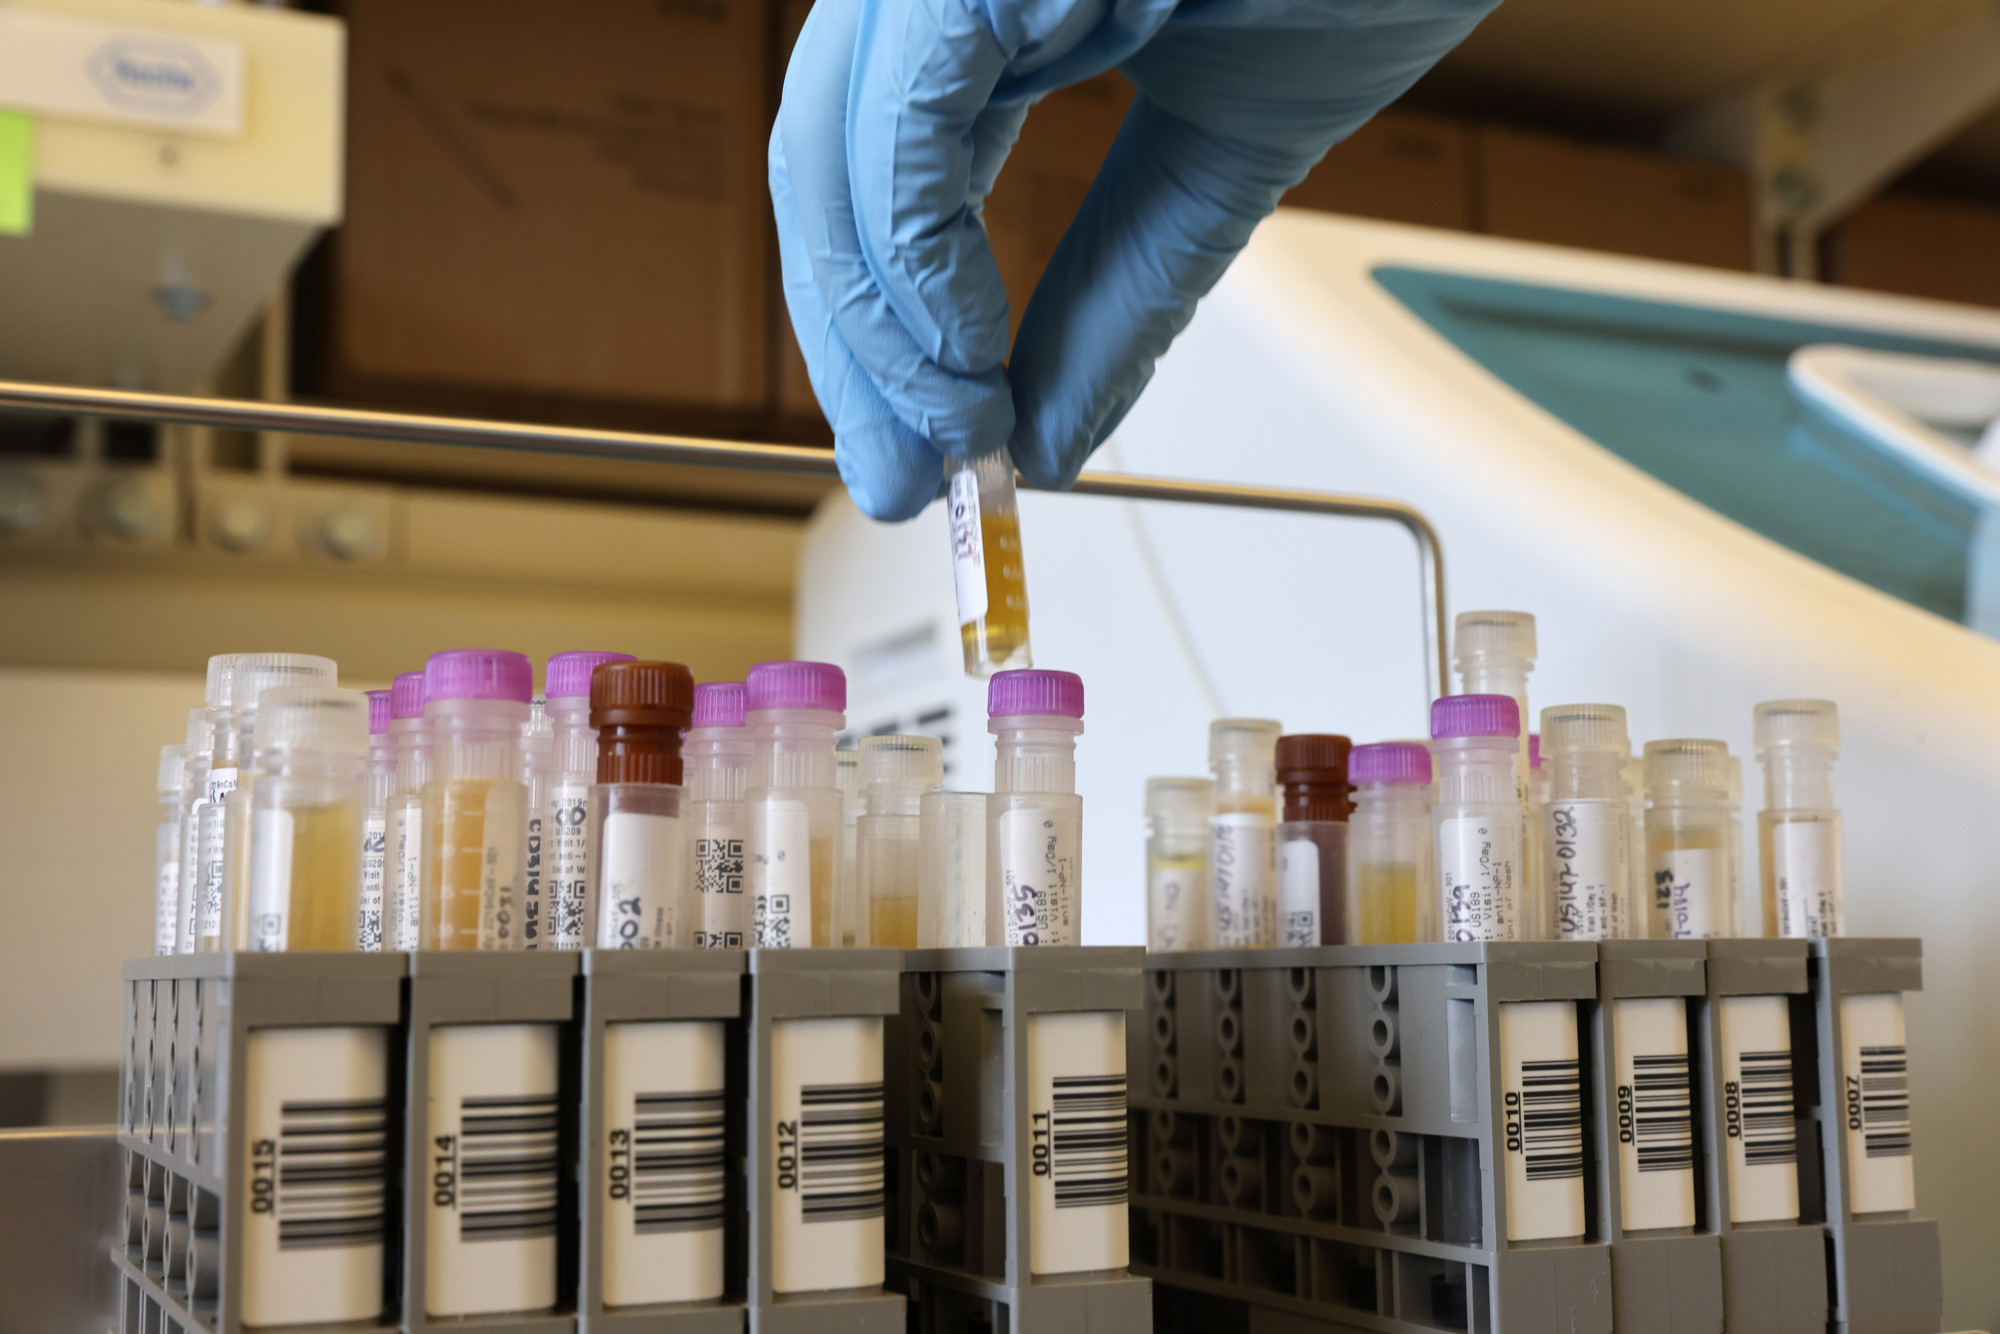 Researchers at the UW Medicine Retrovirology Lab at Harborview Medical Center work on samples from the Novavax phase 3 Covid-19 clinical vaccine trials on February 12 in Seattle.